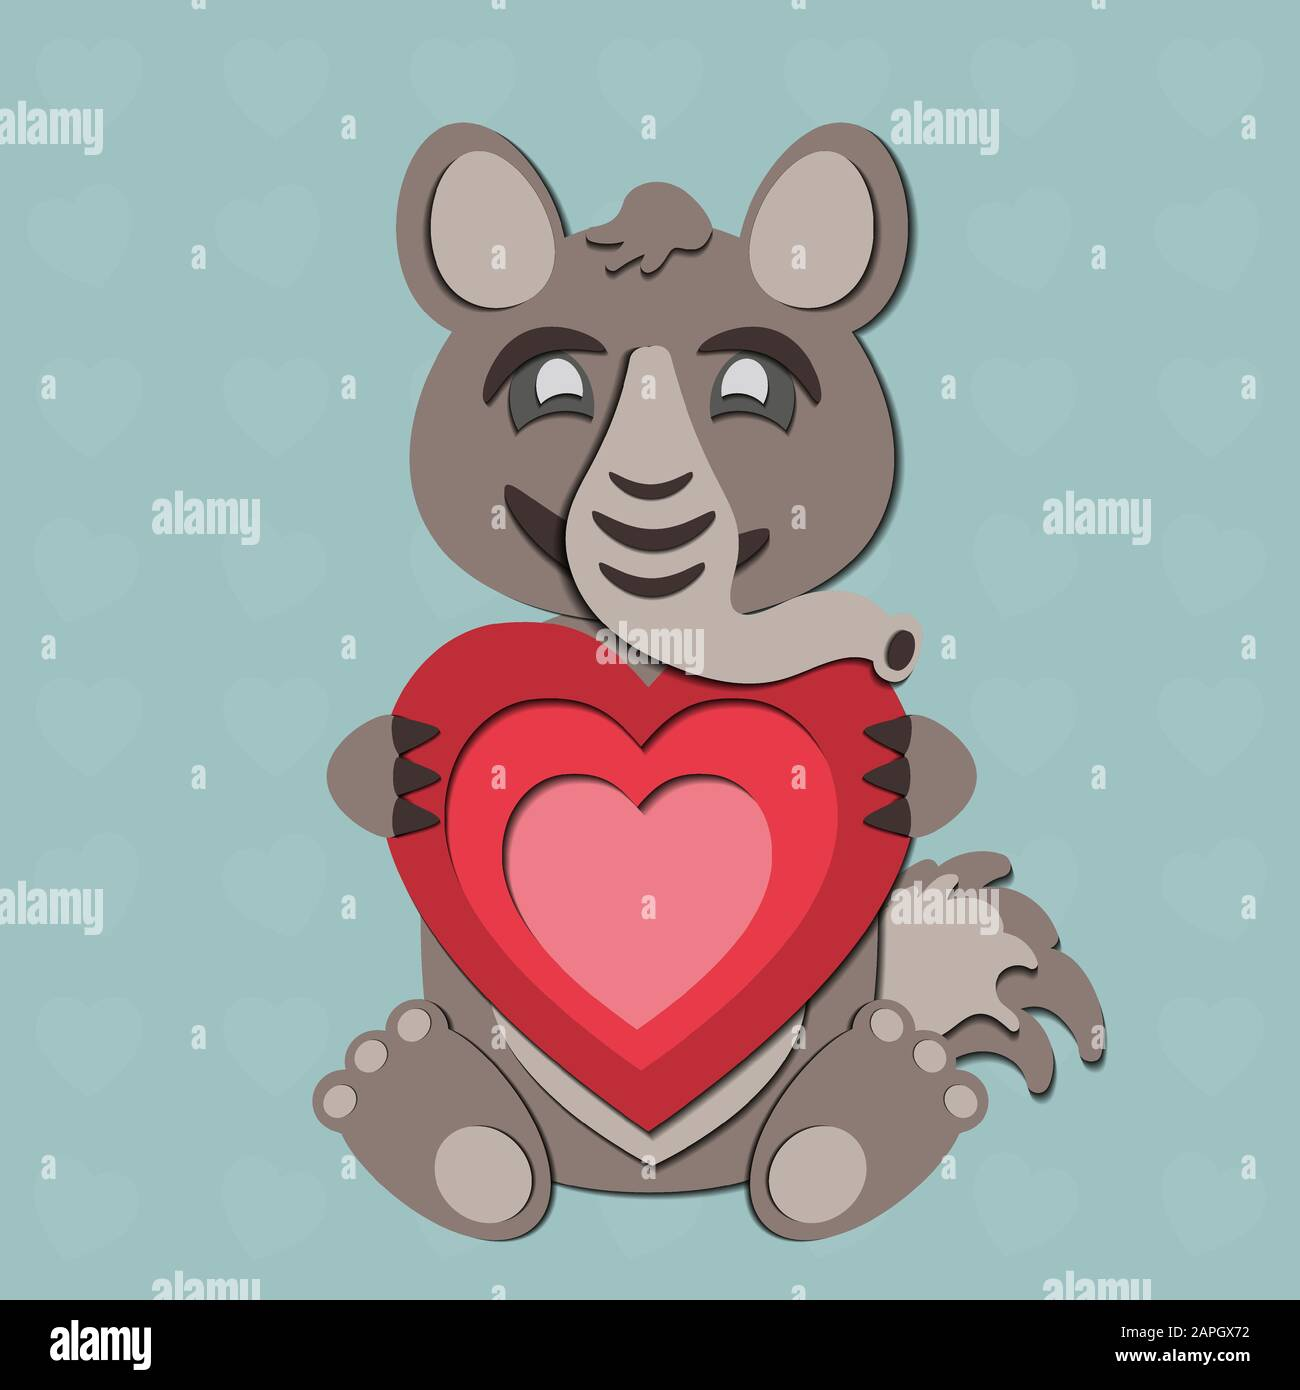 A Valentine S Day Vector Drawing Of A Cute Paper Cut Out Anteater Holding A Red Heart In Its Paws The Animal Is Gray Brown On A Blue Background Stock Vector Image Art